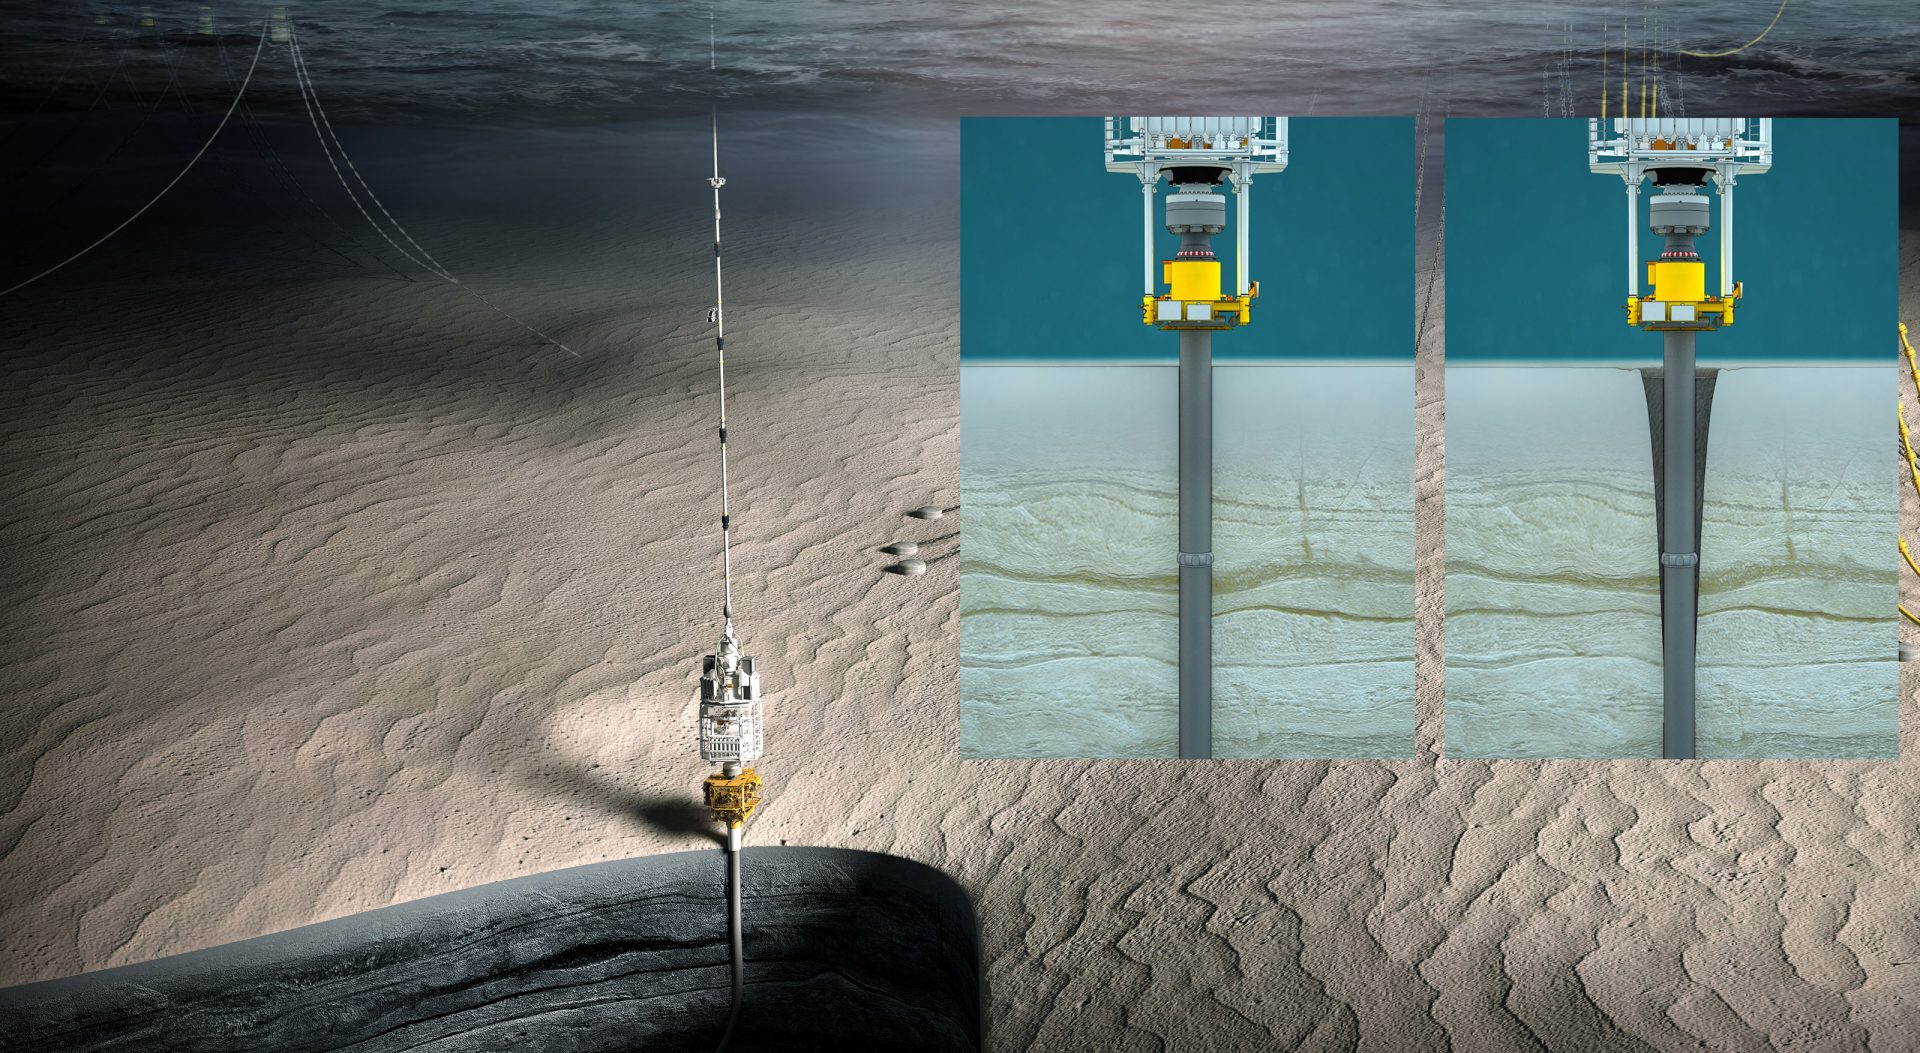 4Subsea conductor analysis